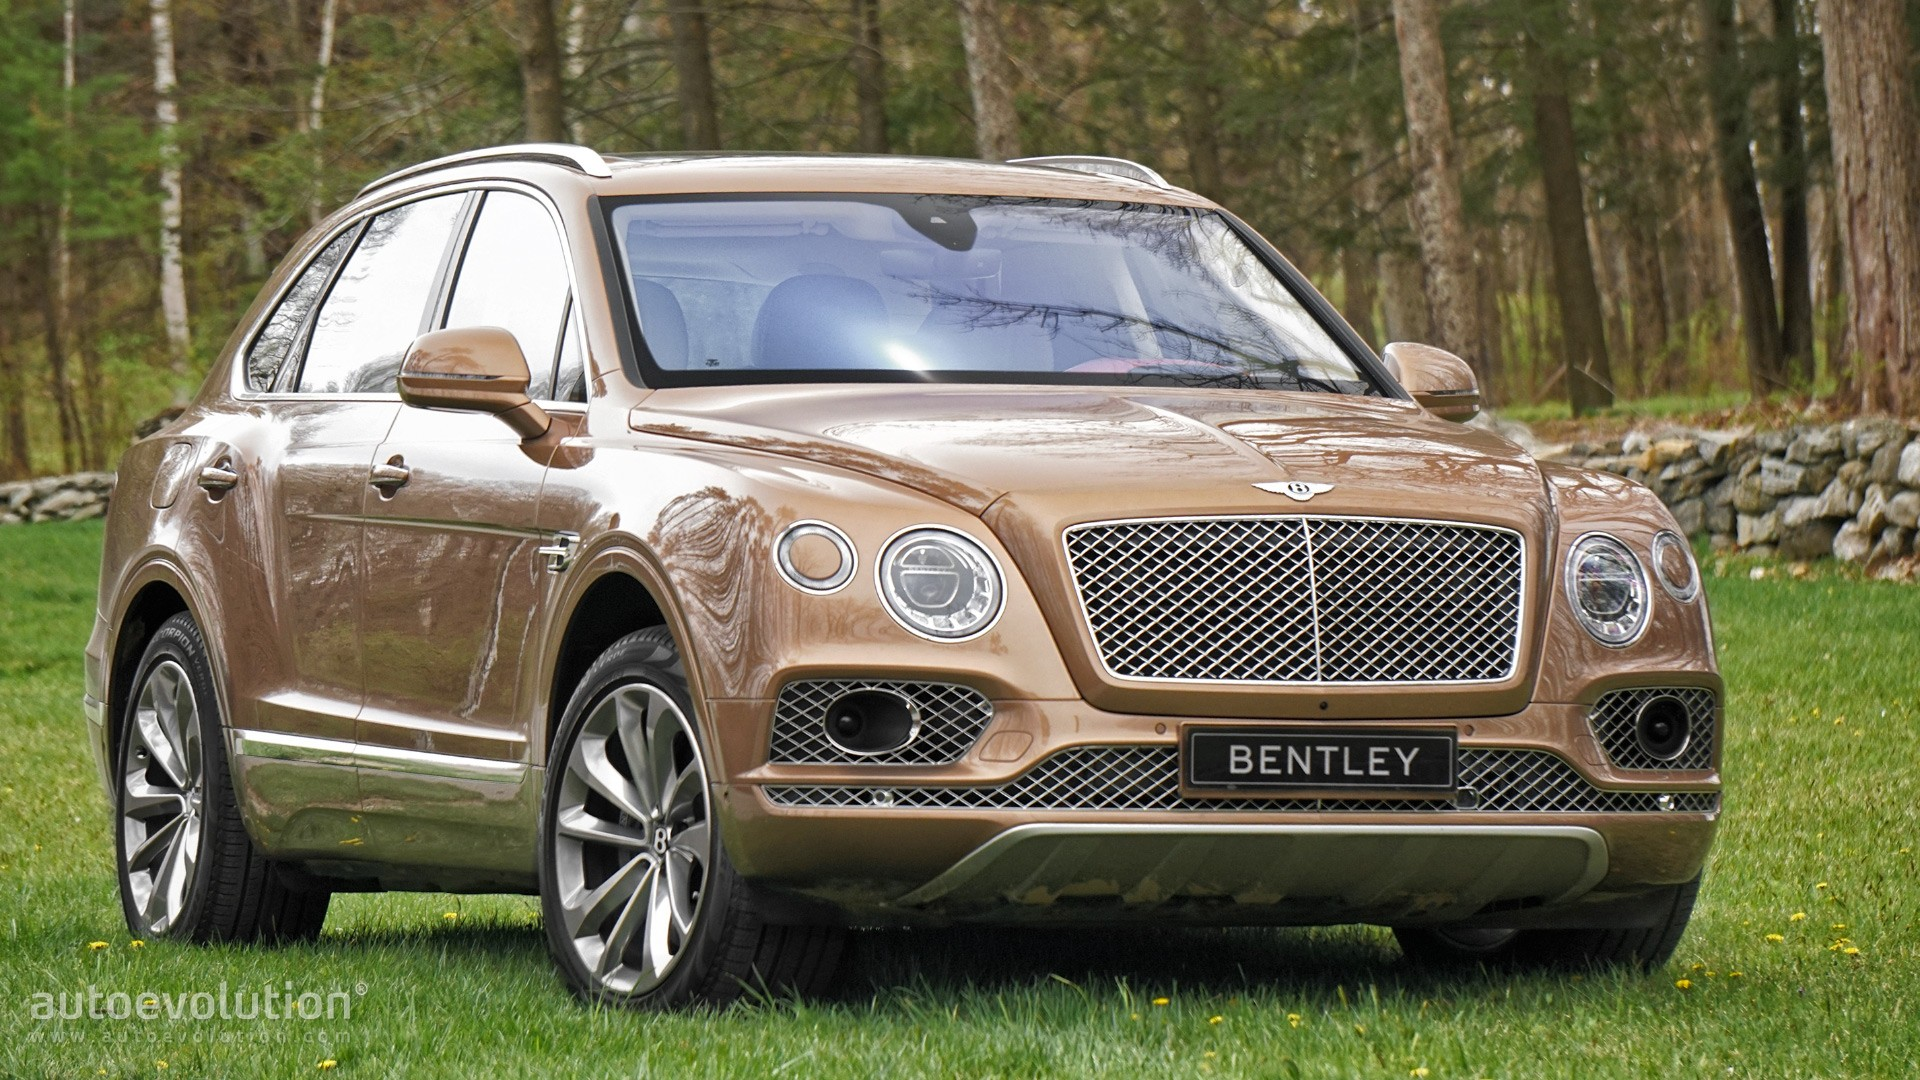 Gls 63 Amg >> 2016 BENTLEY Bentayga W12 Review - autoevolution